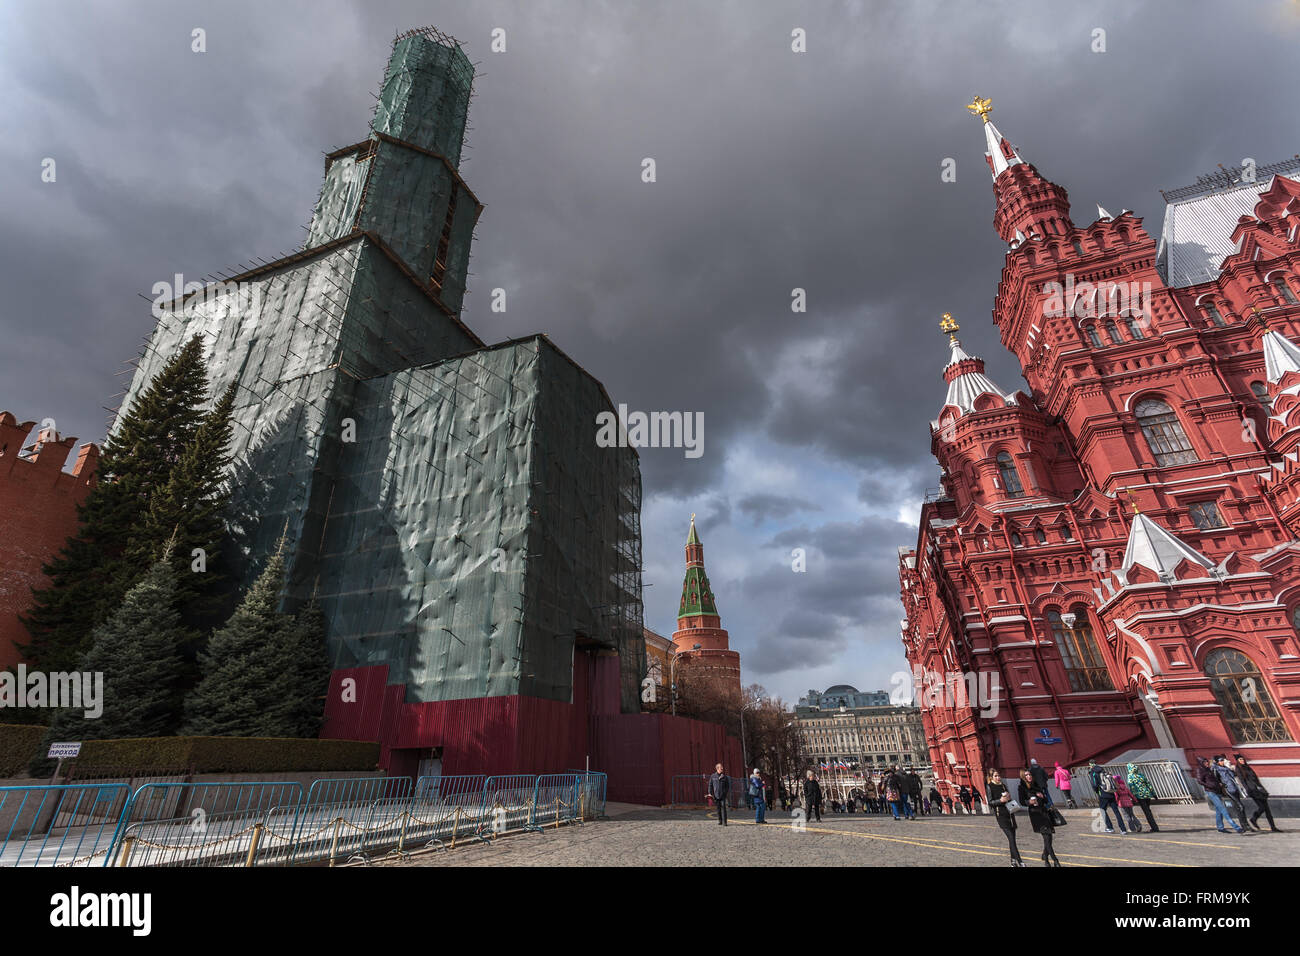 Moscow, Russia - March 20, 2016: Frightening type of the Nikolskaya Tower of the Moscow Kremlin during reconstruction. - Stock Image